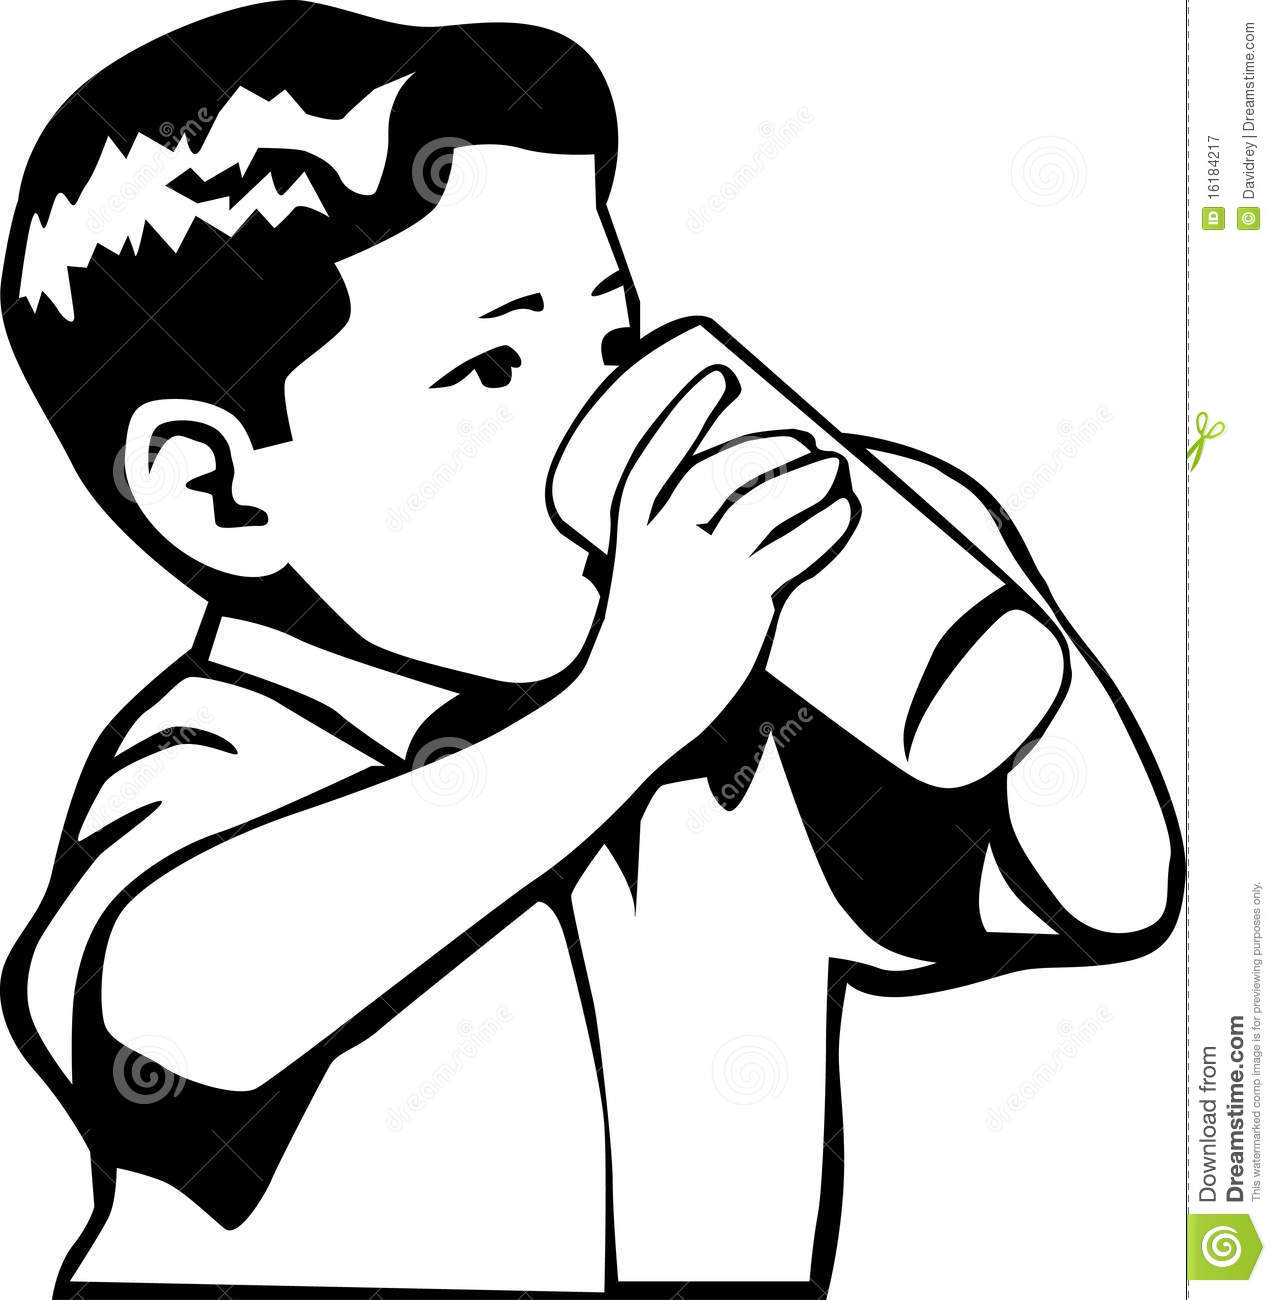 And White Retro Style Illustration Of A Boy Drinking Water Or Milk